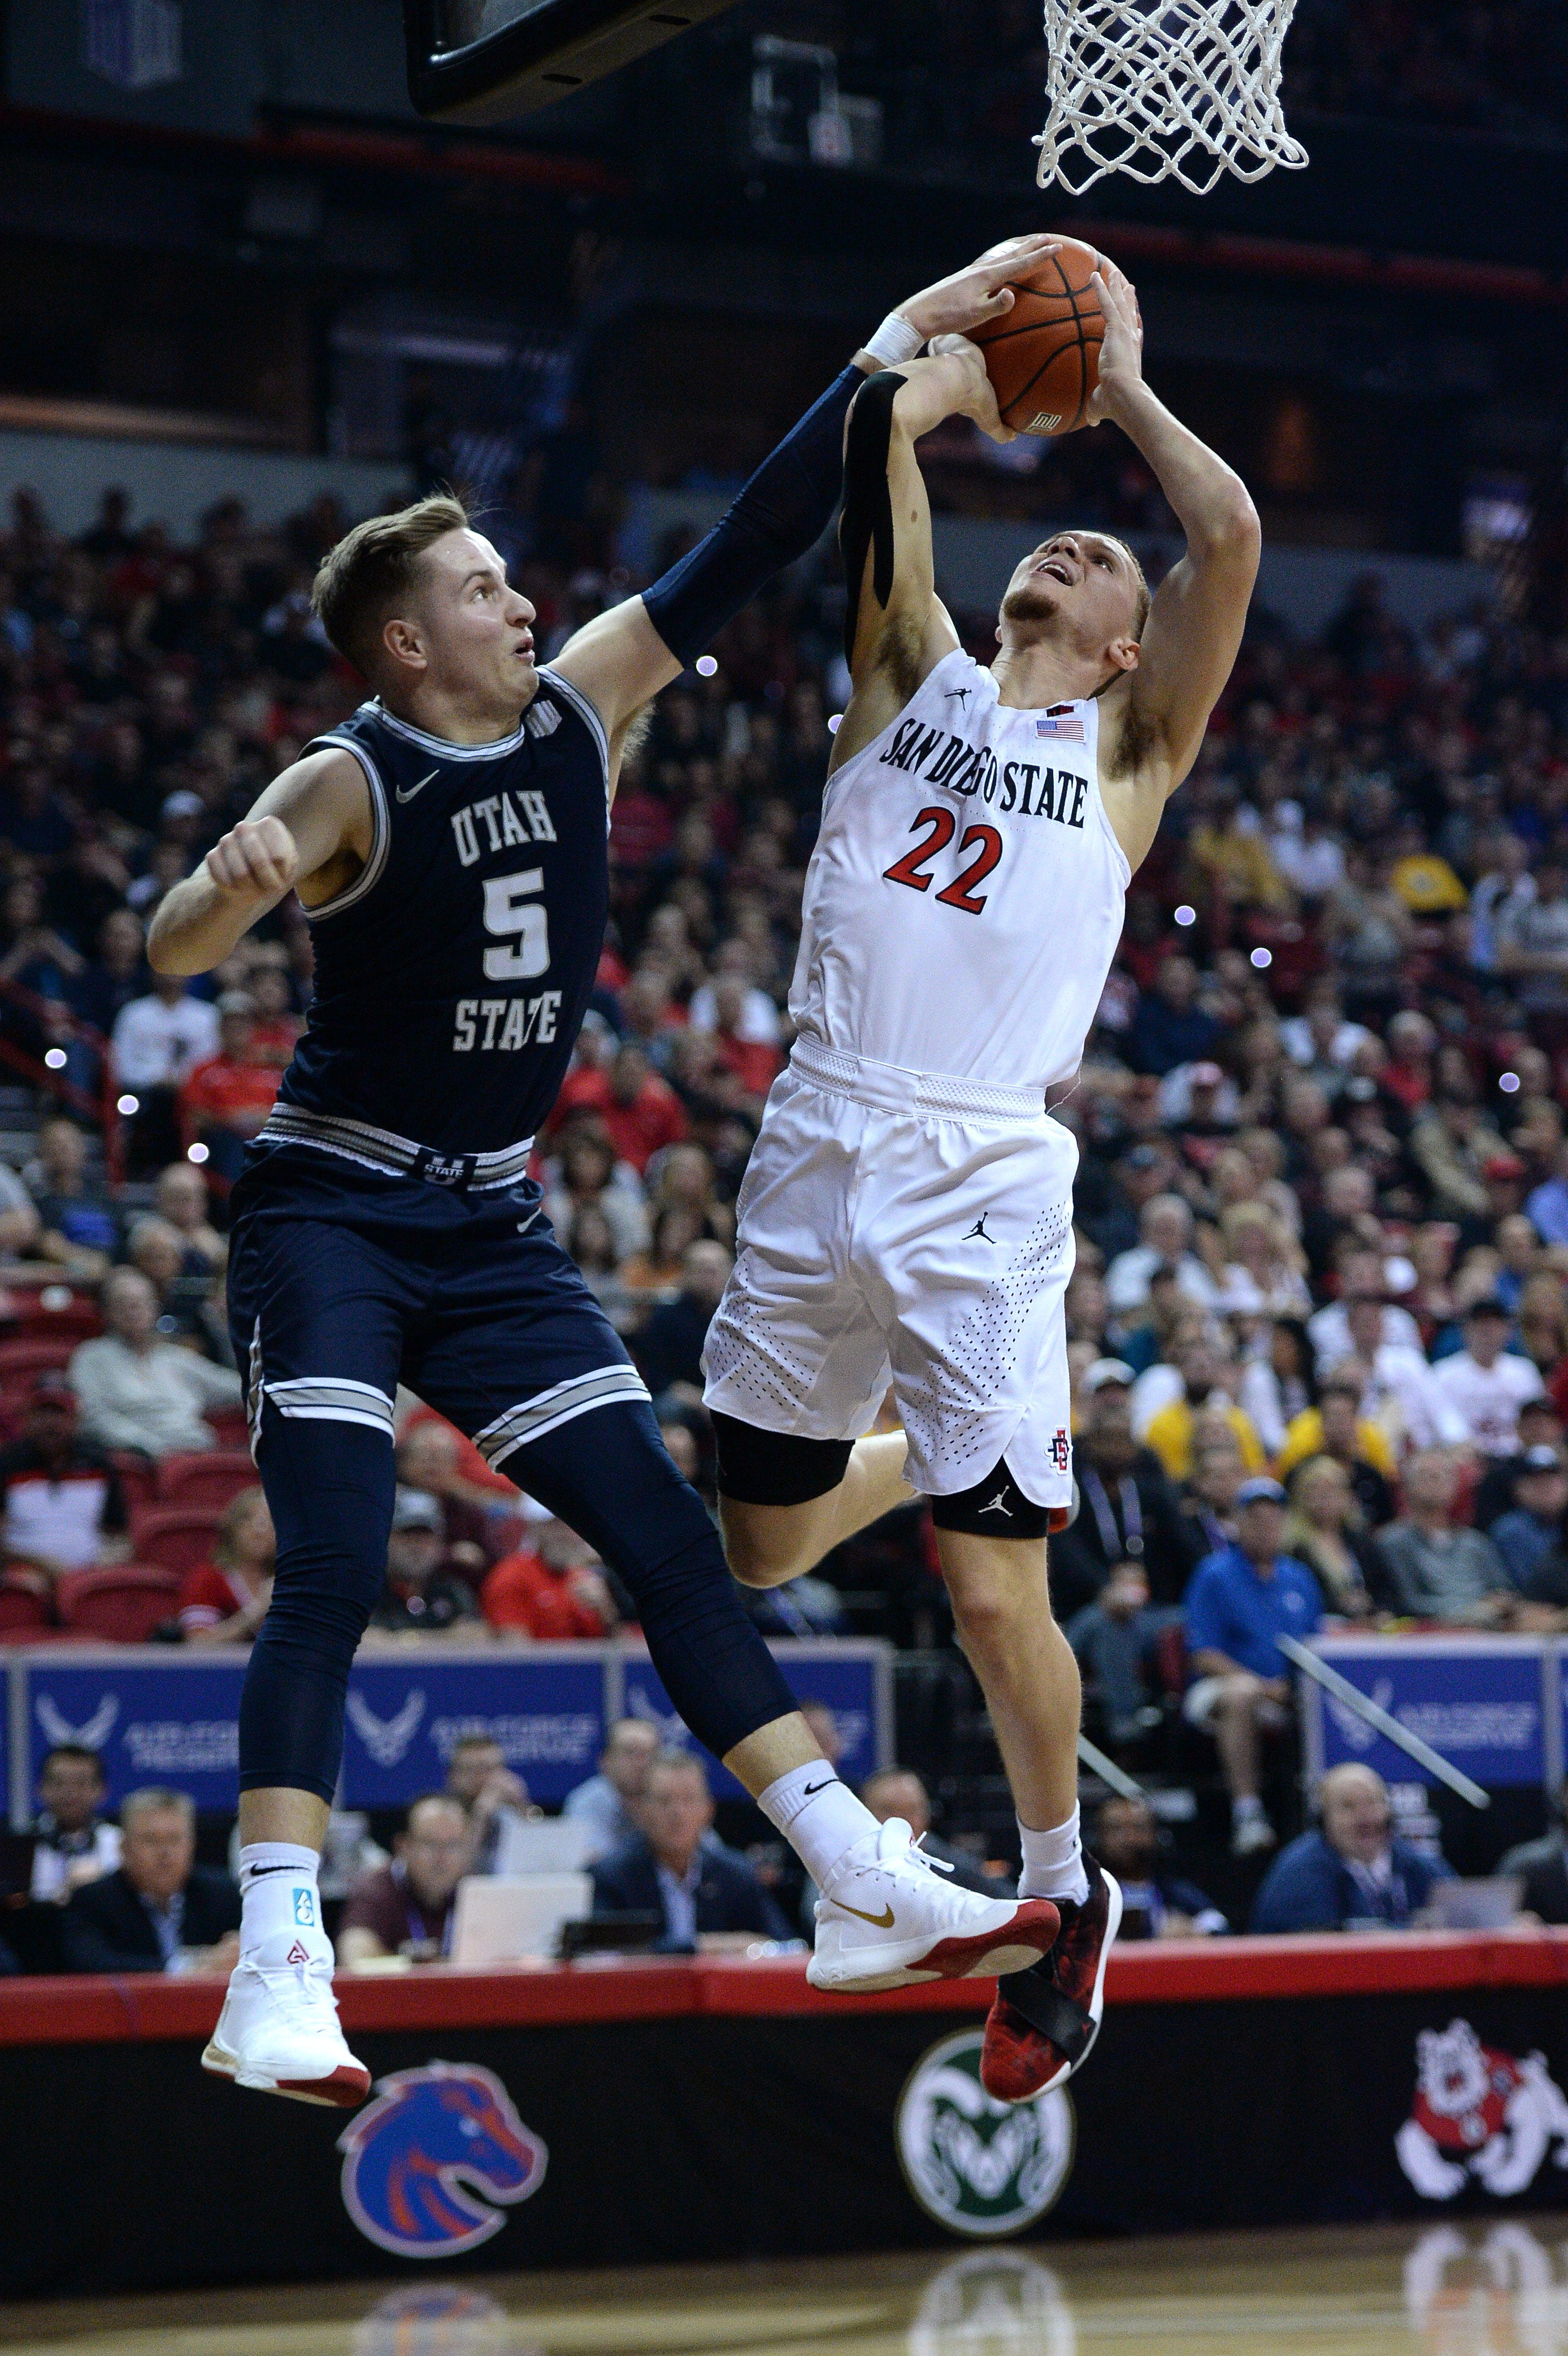 College basketball s winners and losers: San Diego State and Baylor stumble, Duke rises